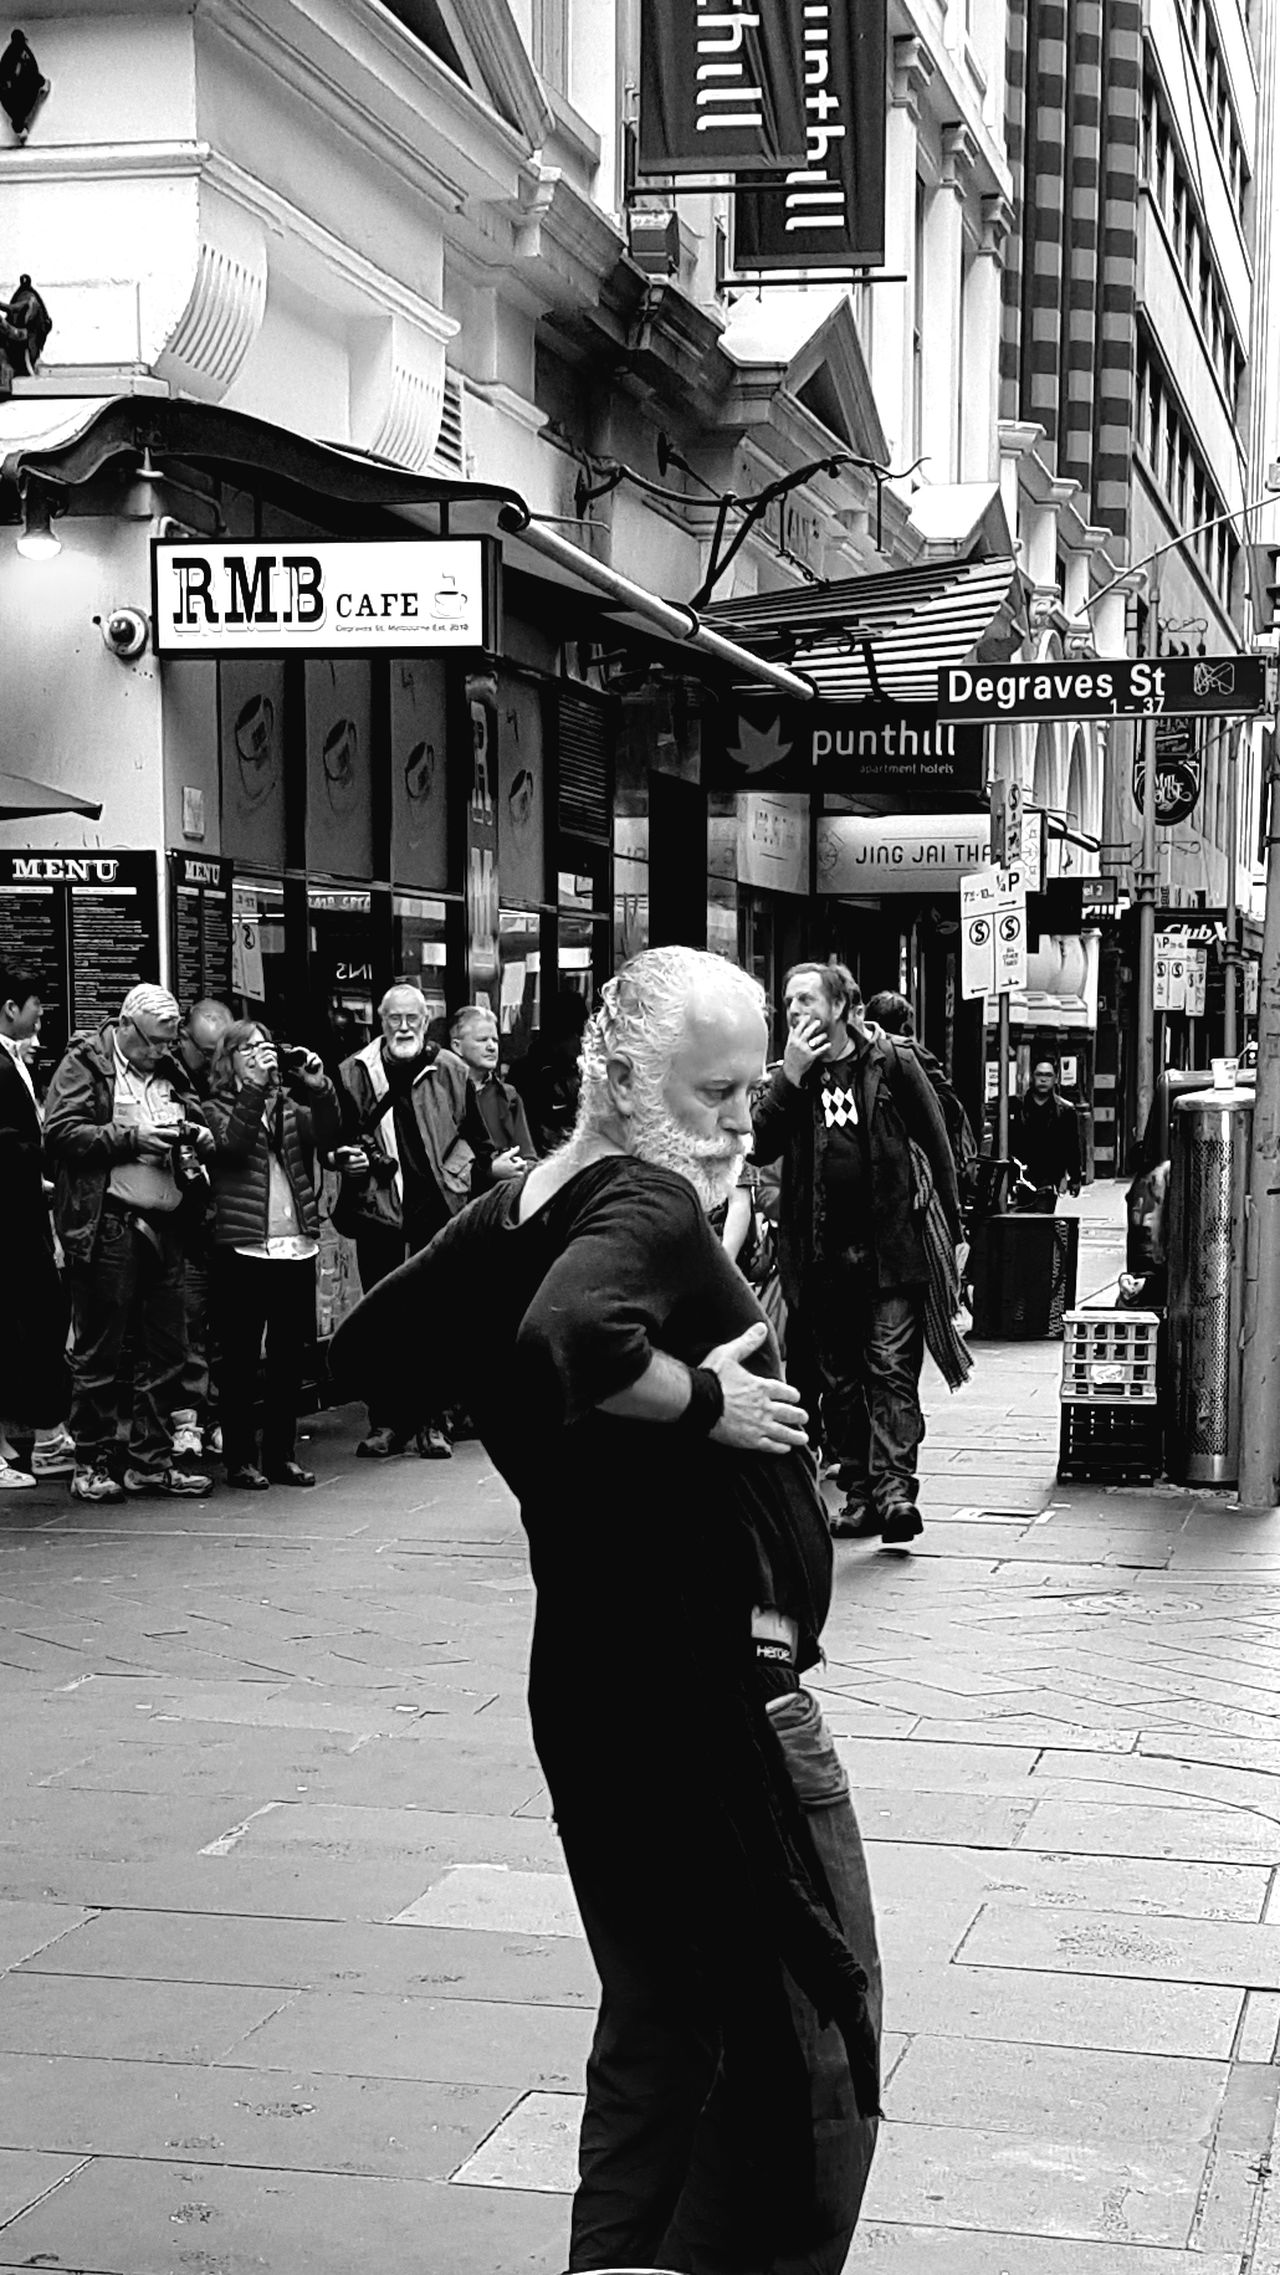 Real People People Outdoors One Person Dancing Dancing In The Street Dancing! Streetphotography Blackandwhite Streetphoto_bw Street Photography